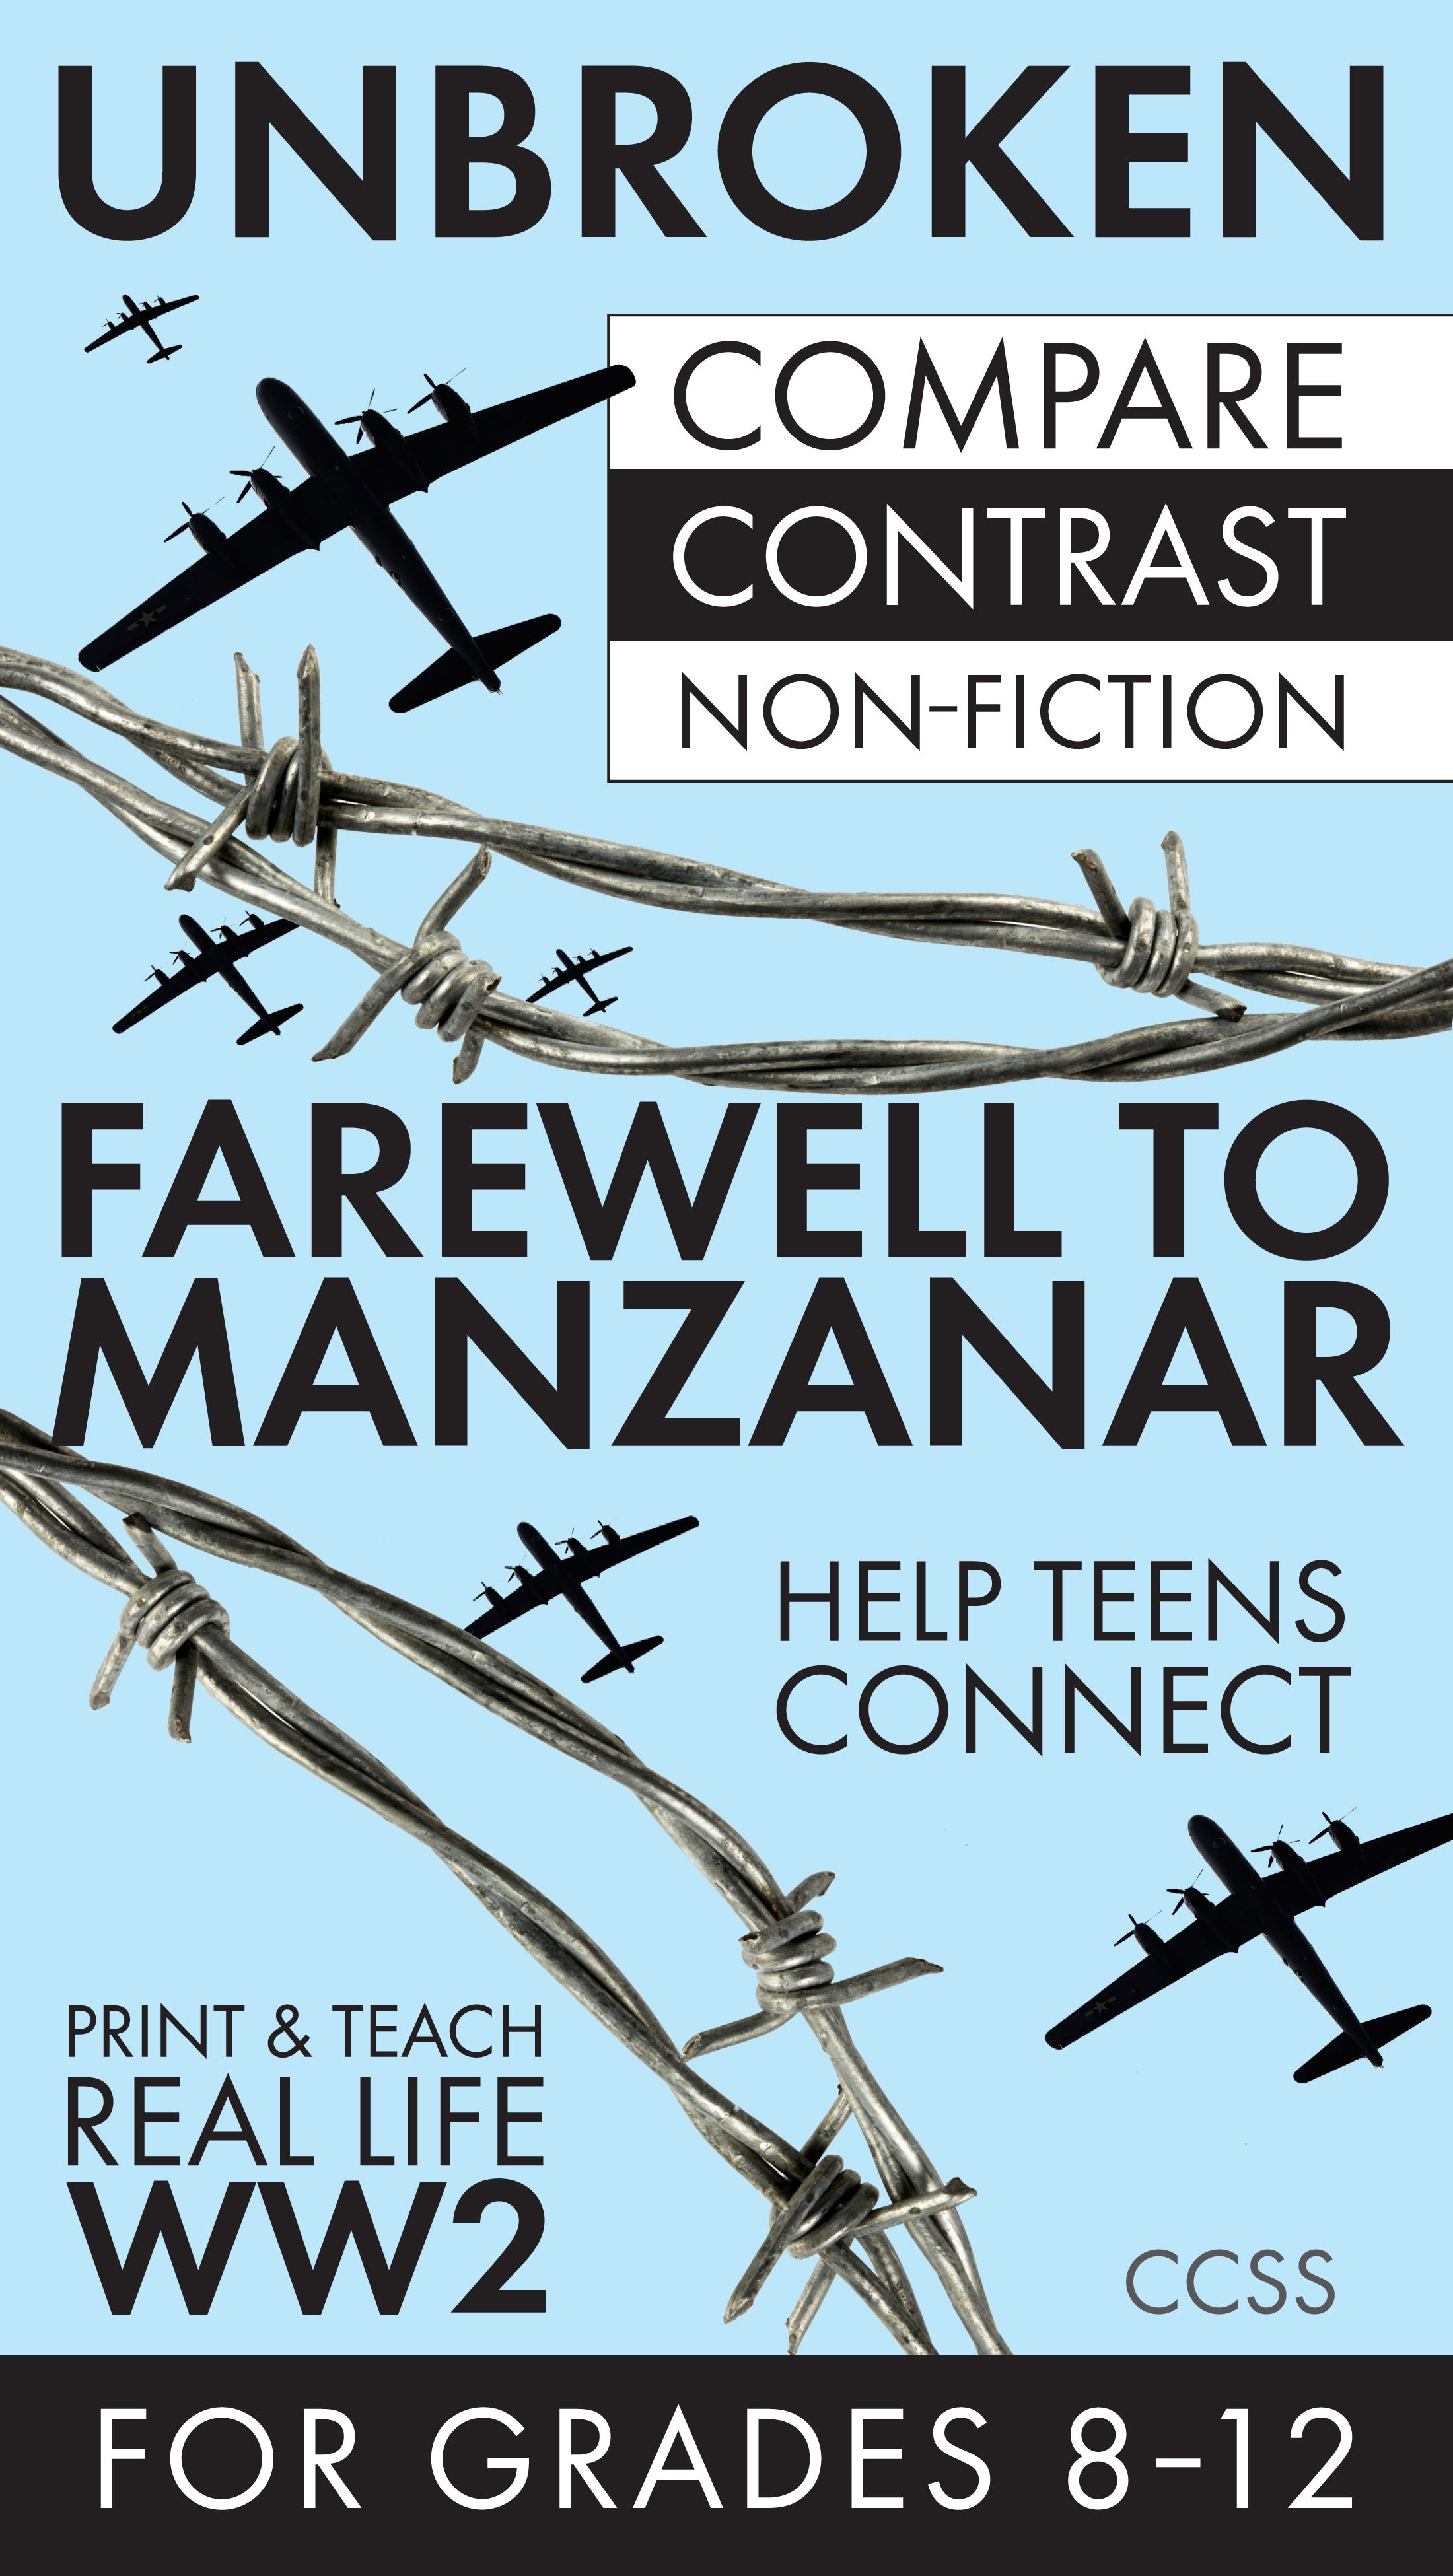 Worksheets Farewell To Manzanar Worksheets unbroken farewell to manzanar compare contrast non fiction with this two day lesson featuring a and of gripping stories from world war ii manz